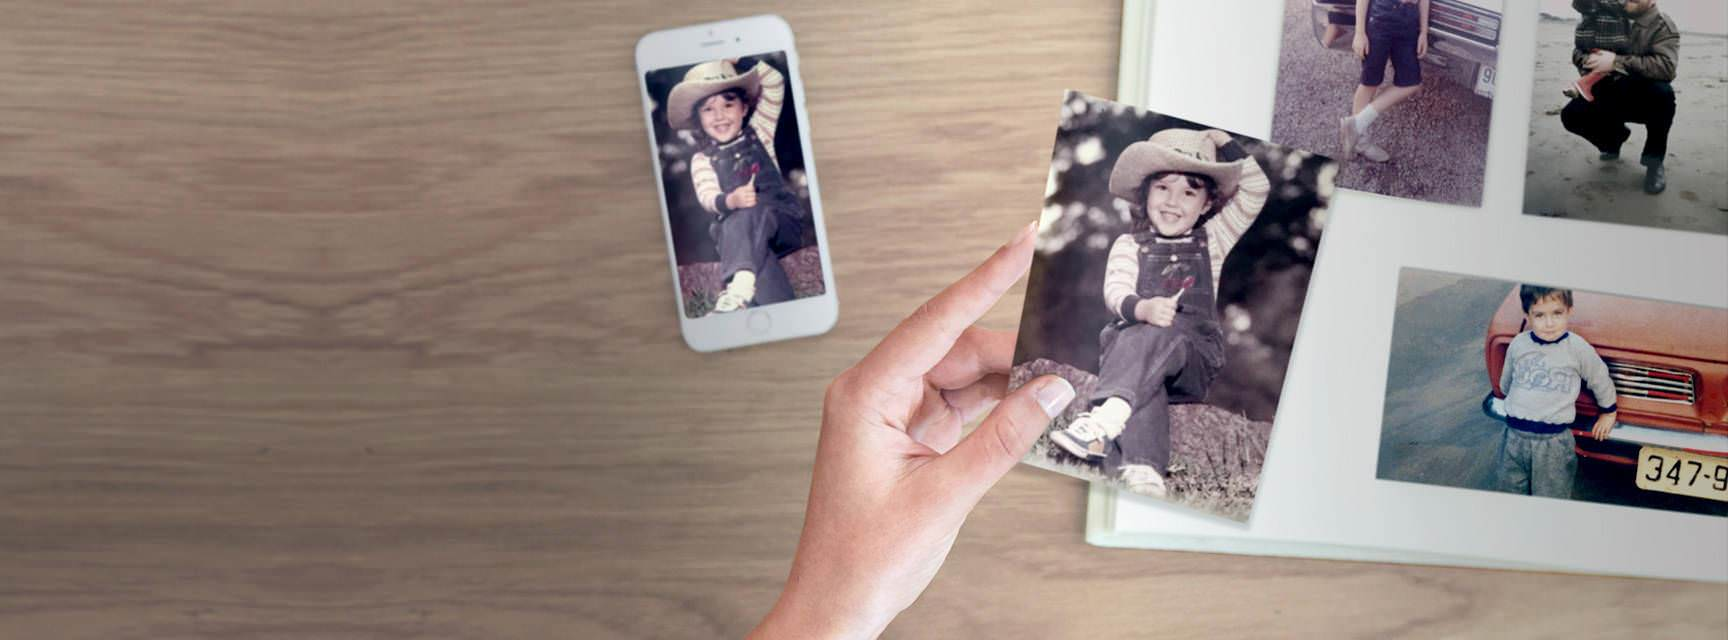 iPhone showing a scanned photo in the Photomyne app next to a paper photo album with the same photo, printed